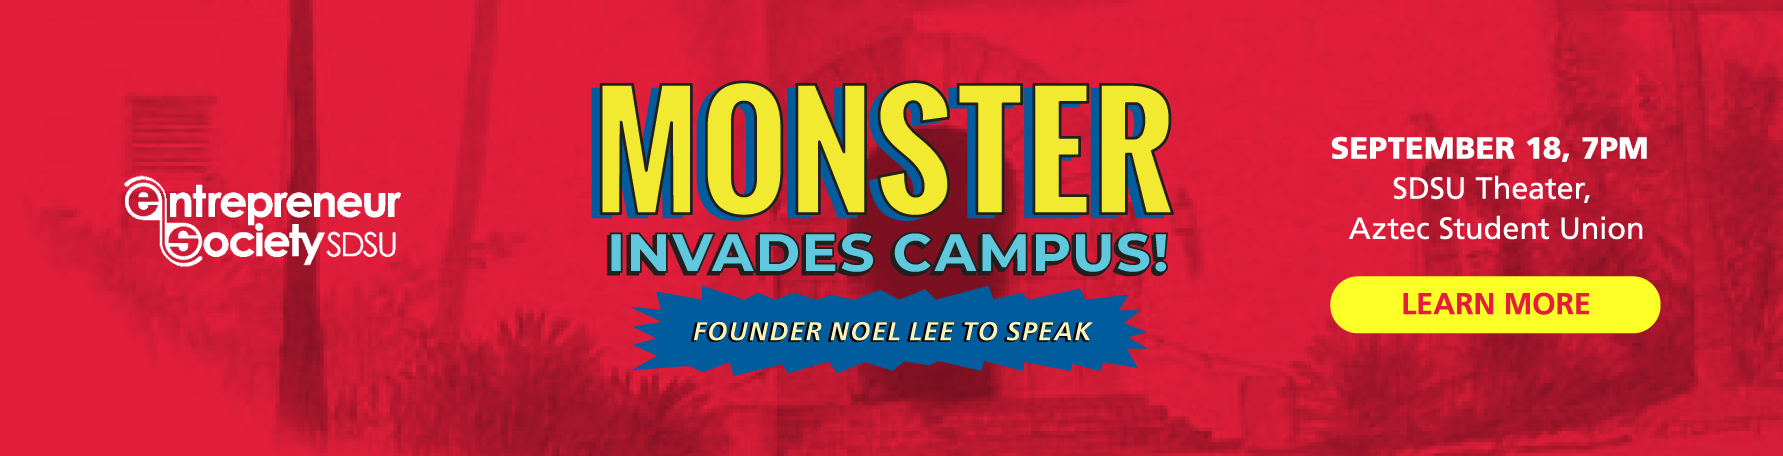 Noel Lee Founder of Monster to Speak